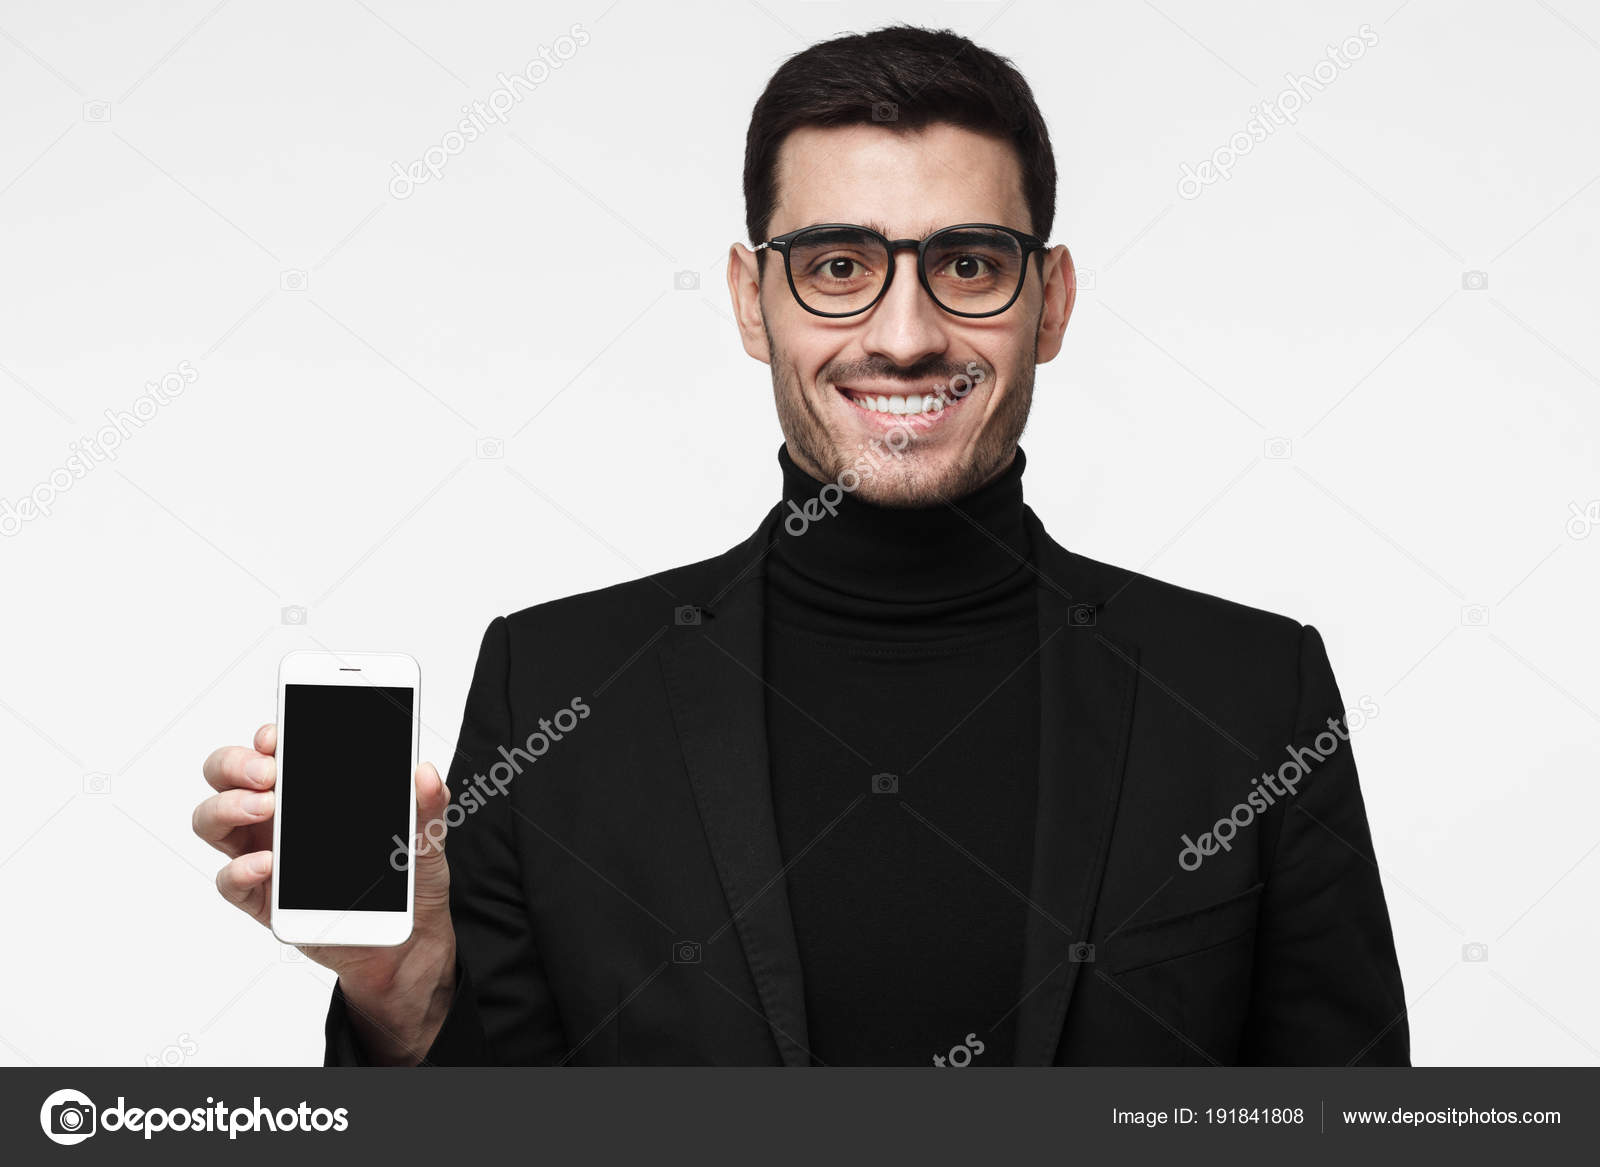 Handsome sophisticated business man isolated on grey background